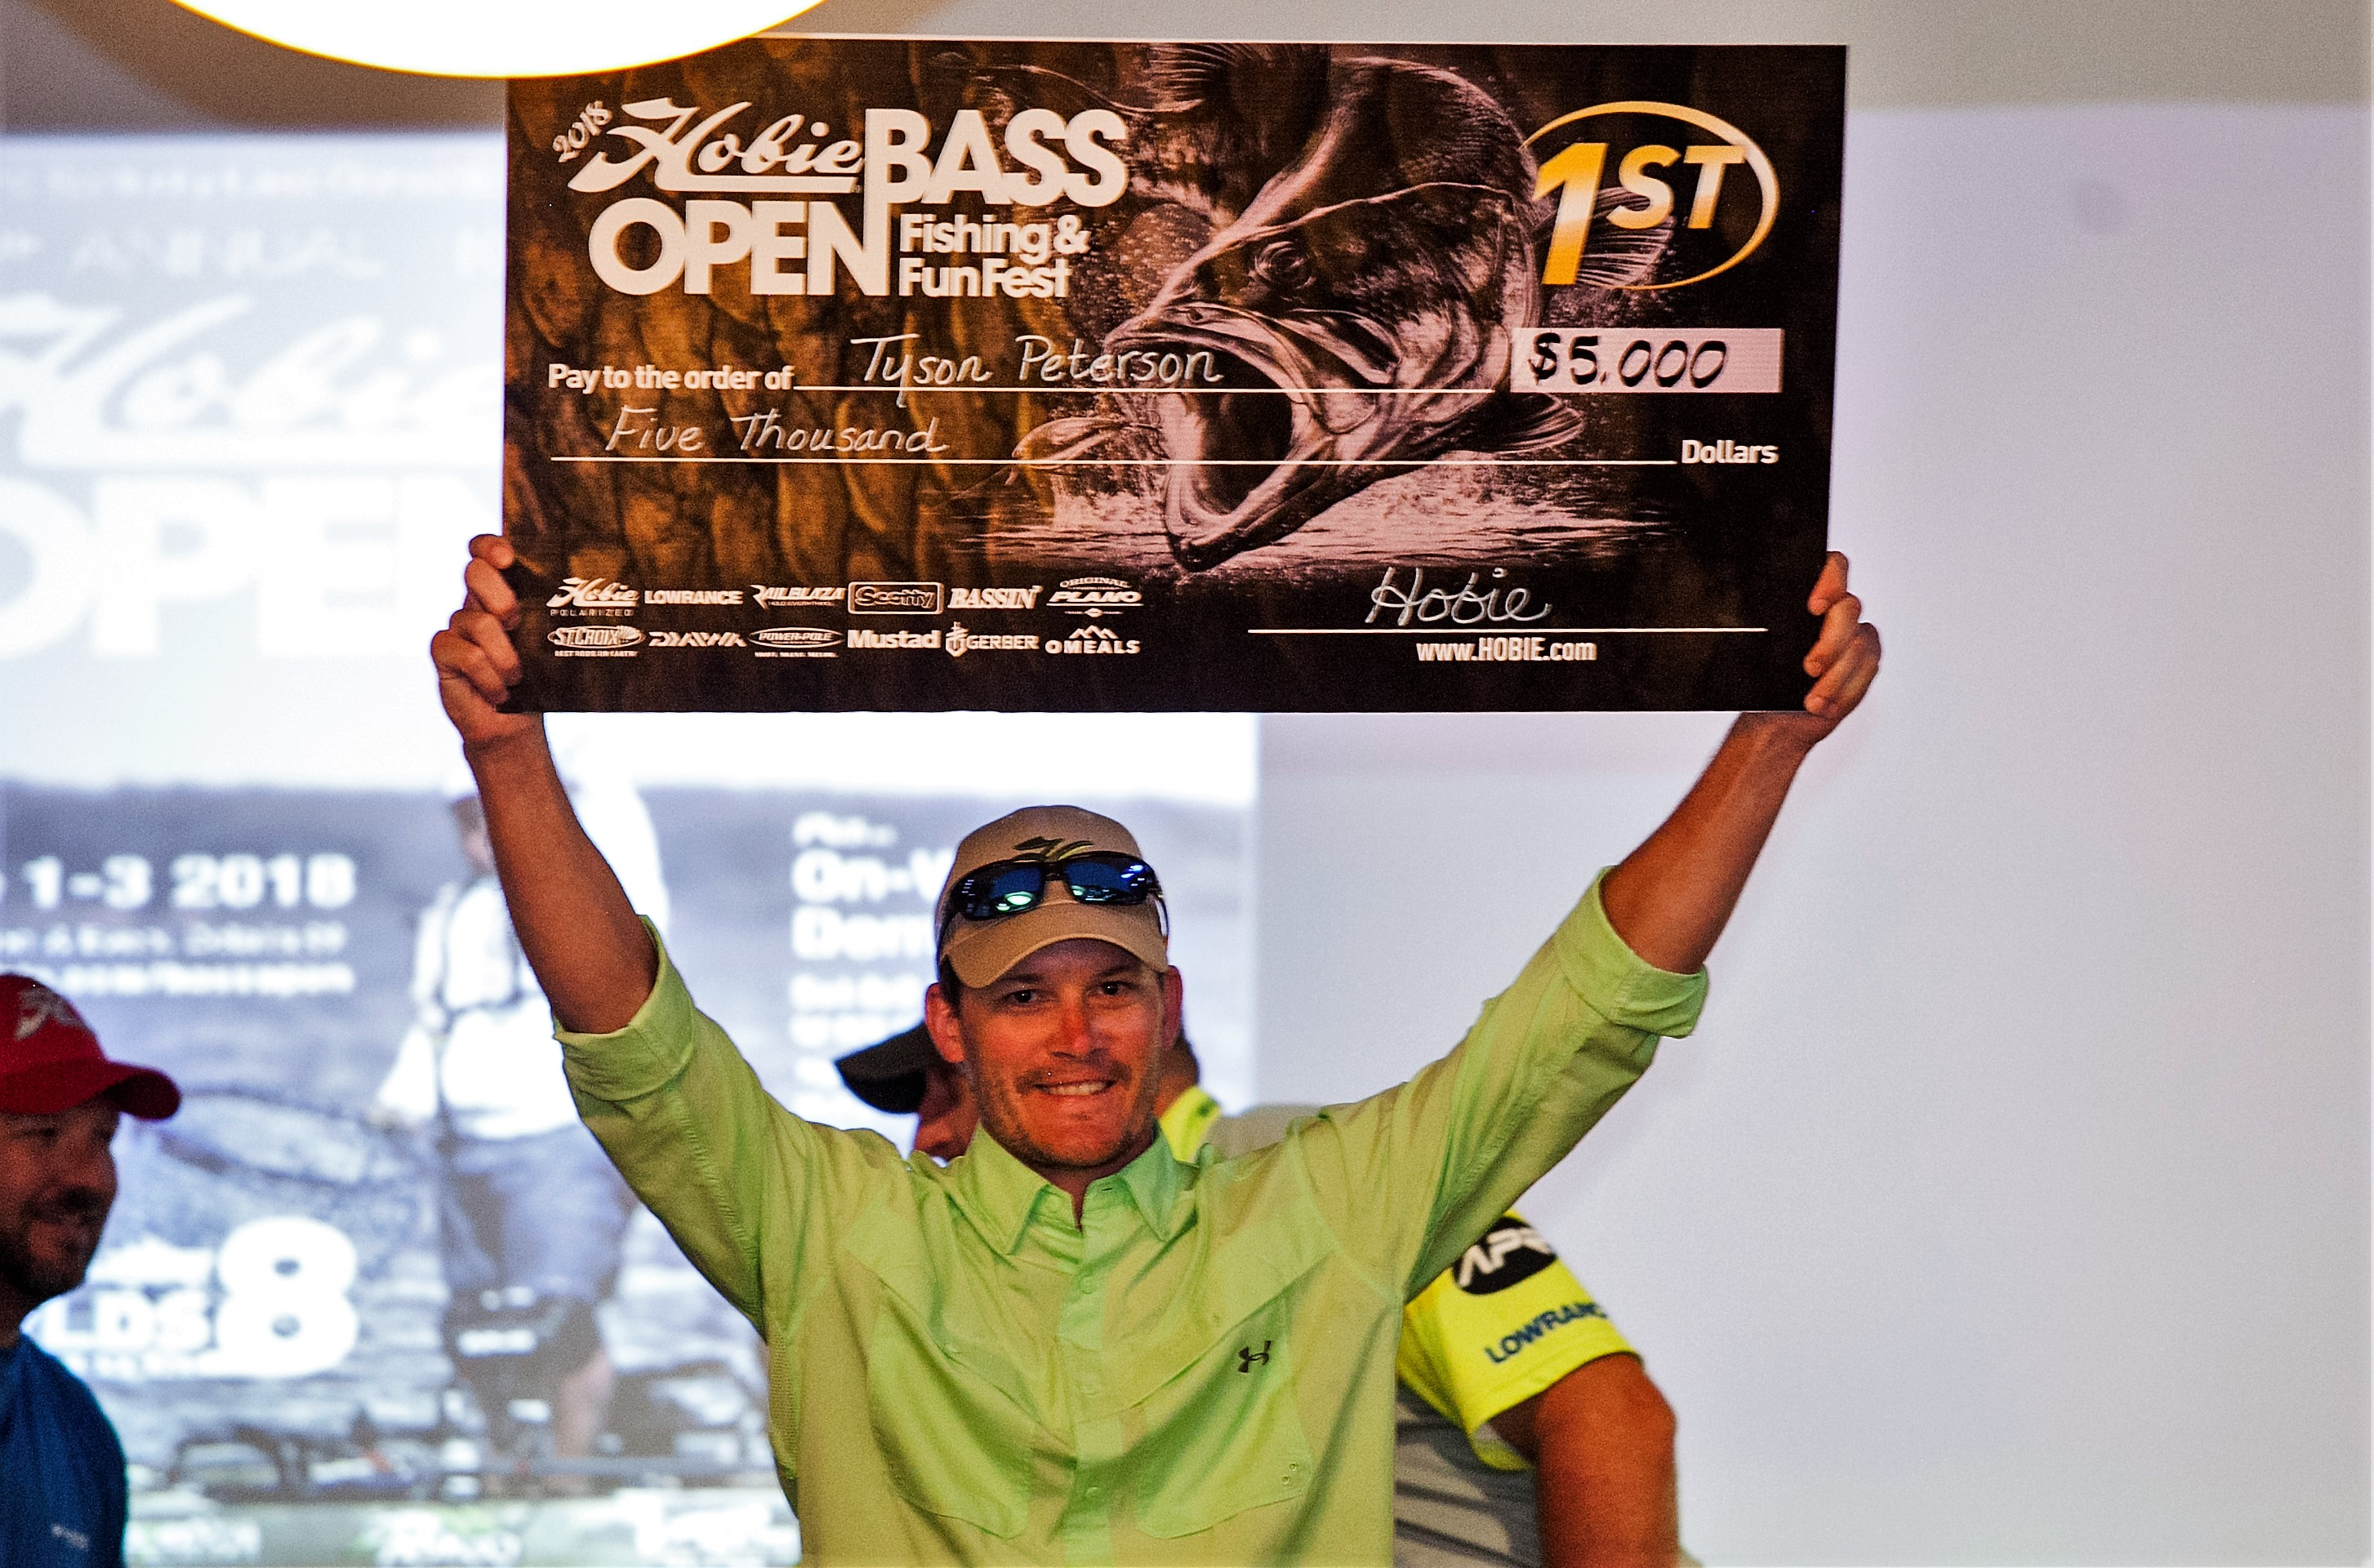 Hobie Bass Open 2018: Tyson Peterson first to repeat as Hobie Bass Open champion, returns to Hobie World Event